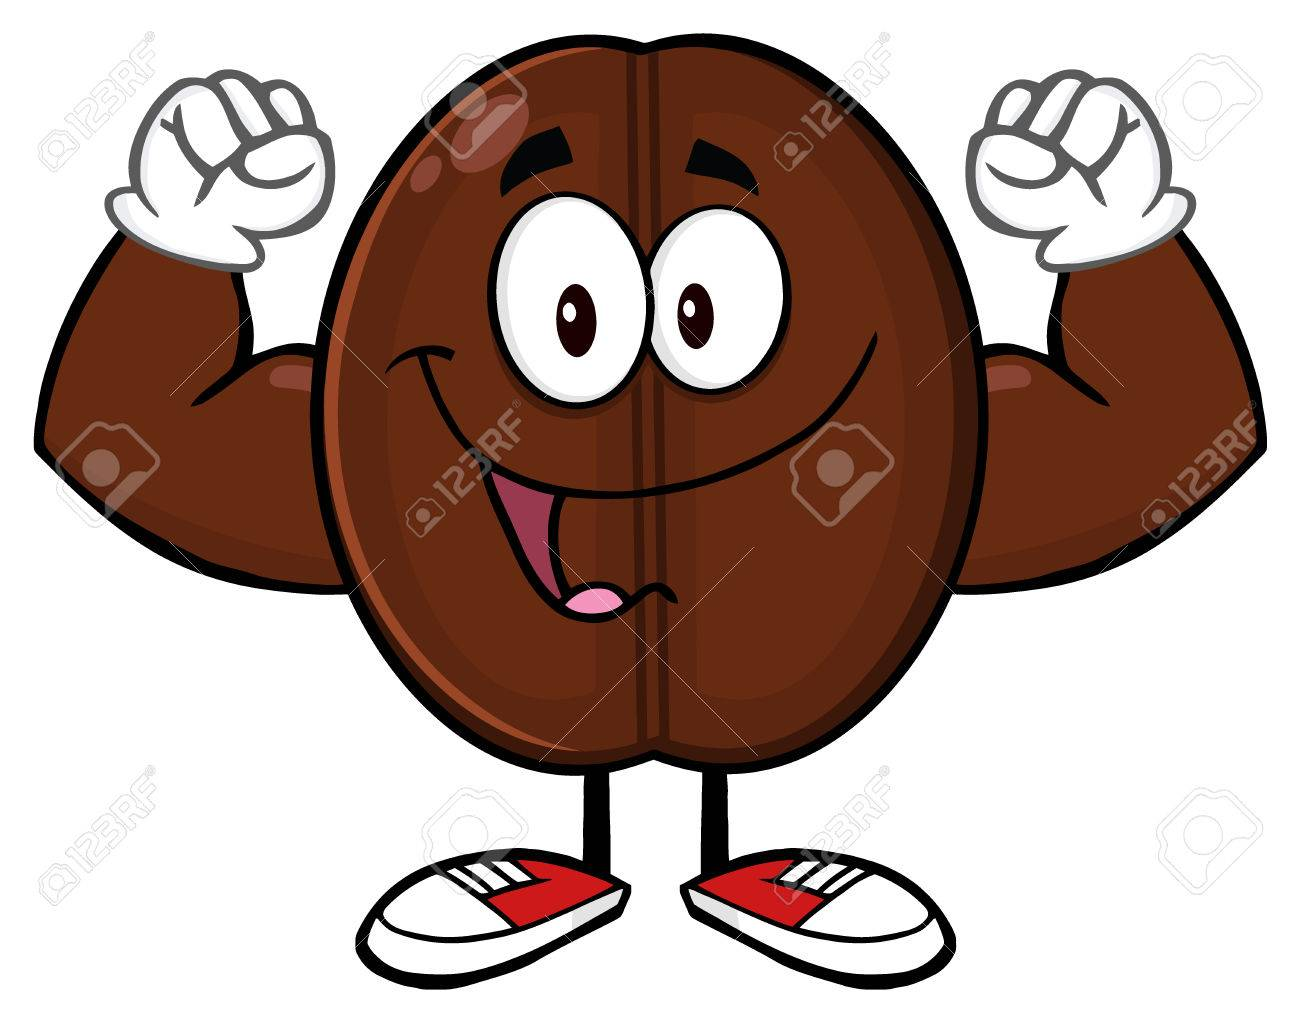 Happy Coffee Bean Cartoon Mascot Character Flexing Stock Photo Picture And Royalty Free Image Image 57271166